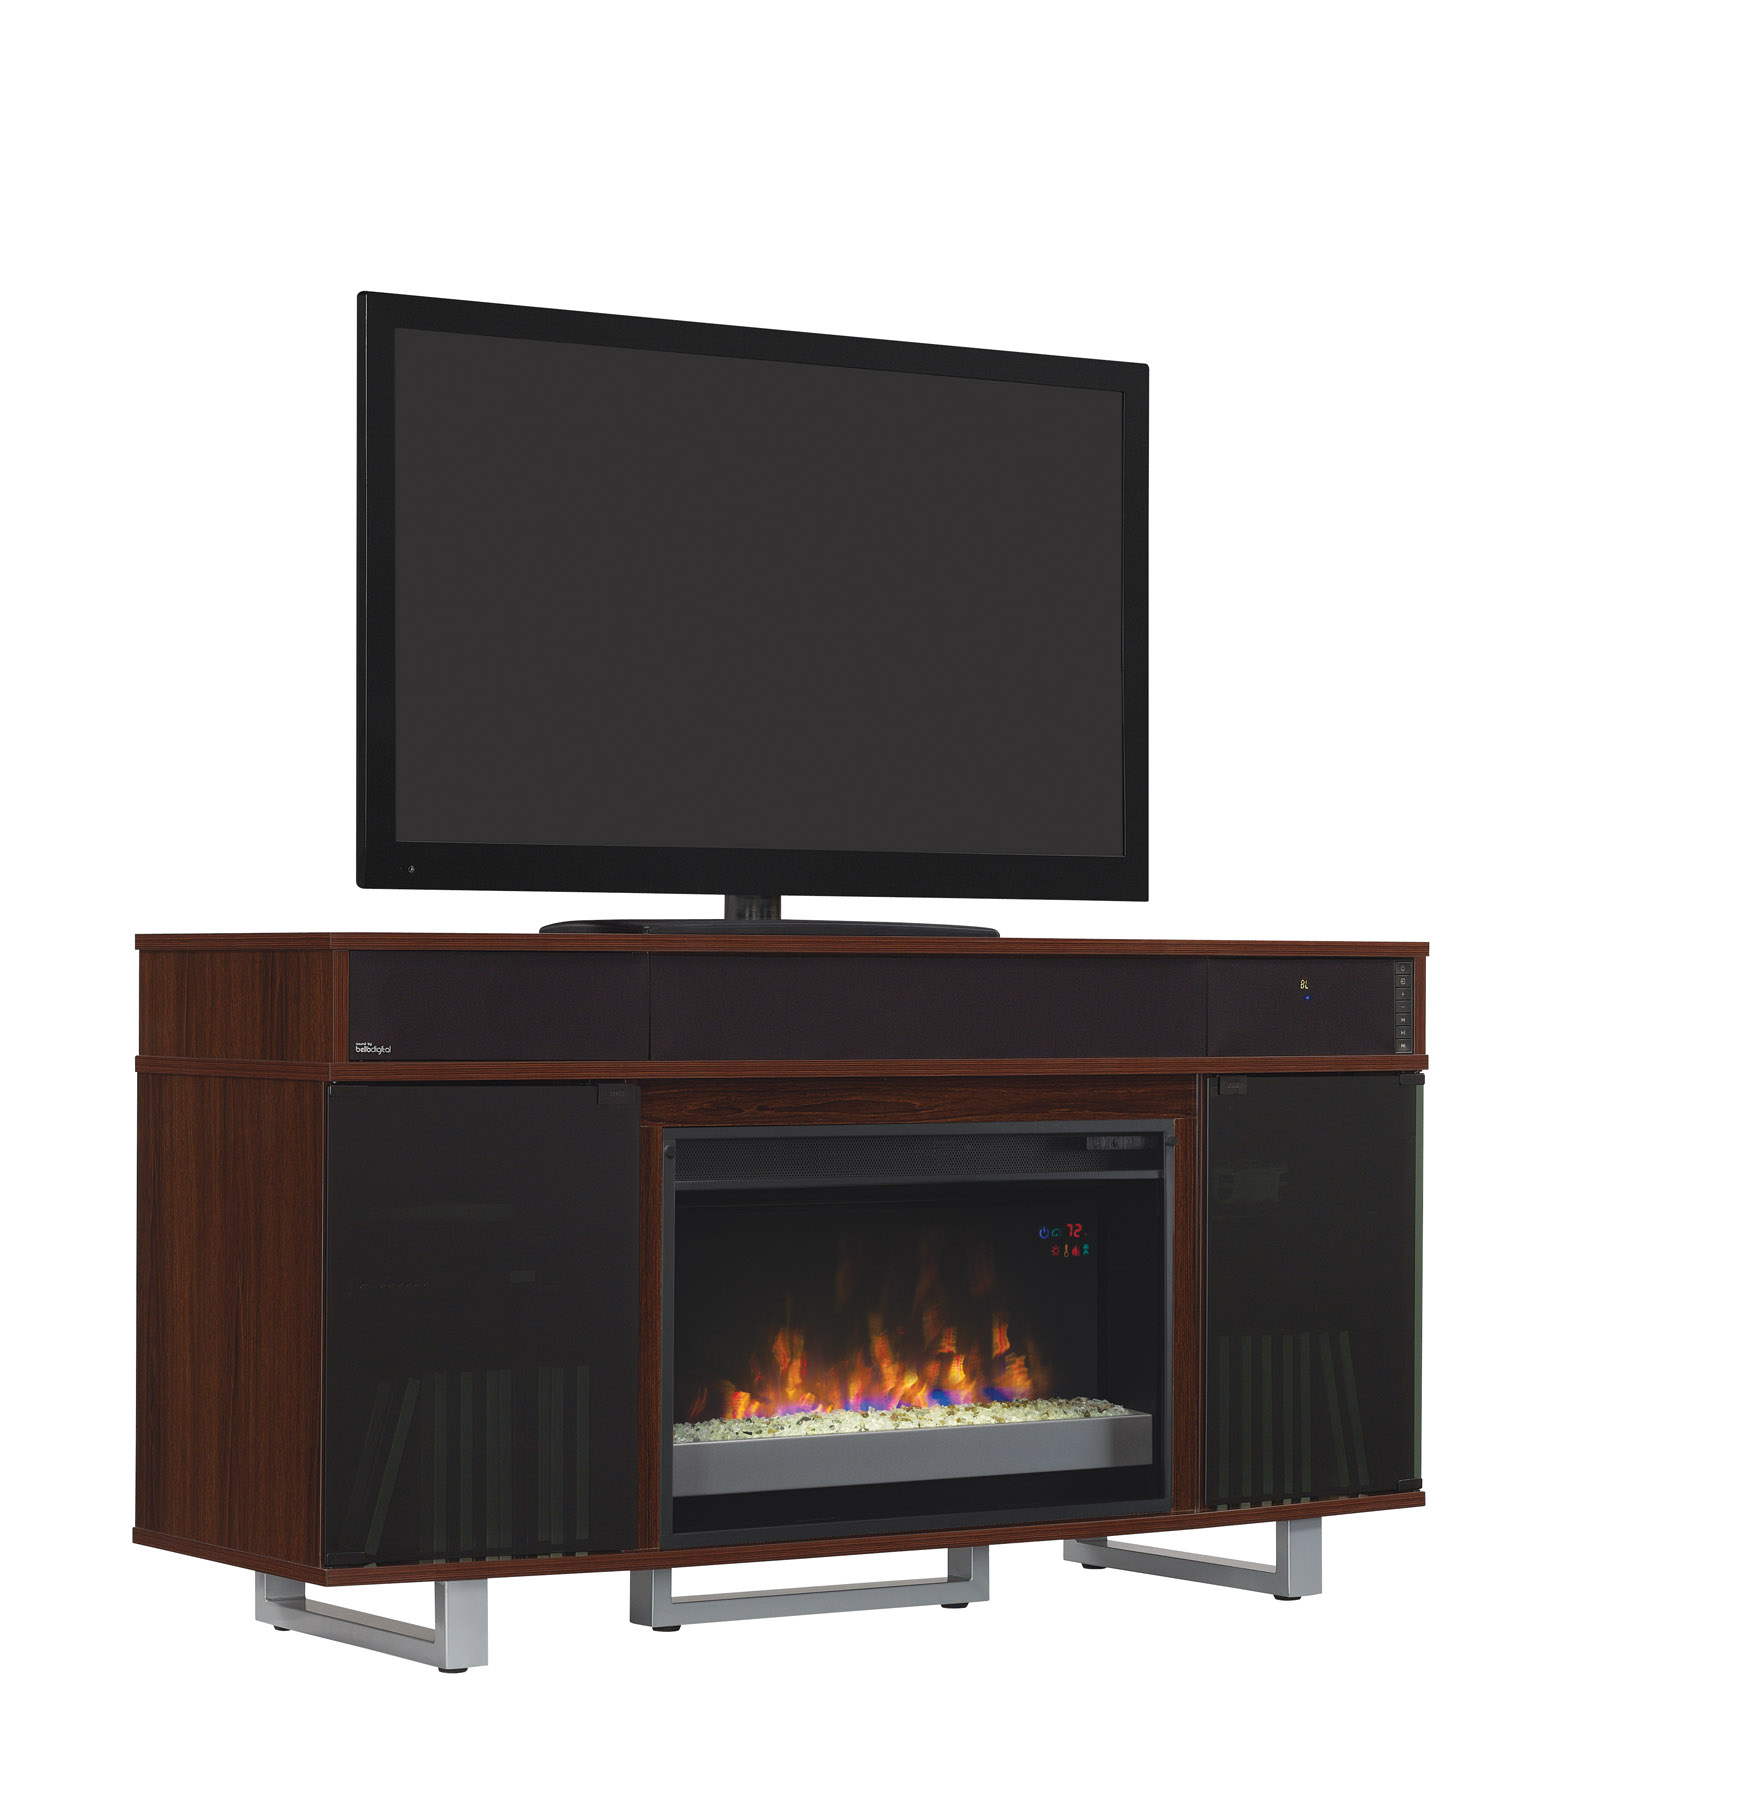 56 new enterprise high gloss cherry infrared media electric fireplace w bluetooth speakers. Black Bedroom Furniture Sets. Home Design Ideas